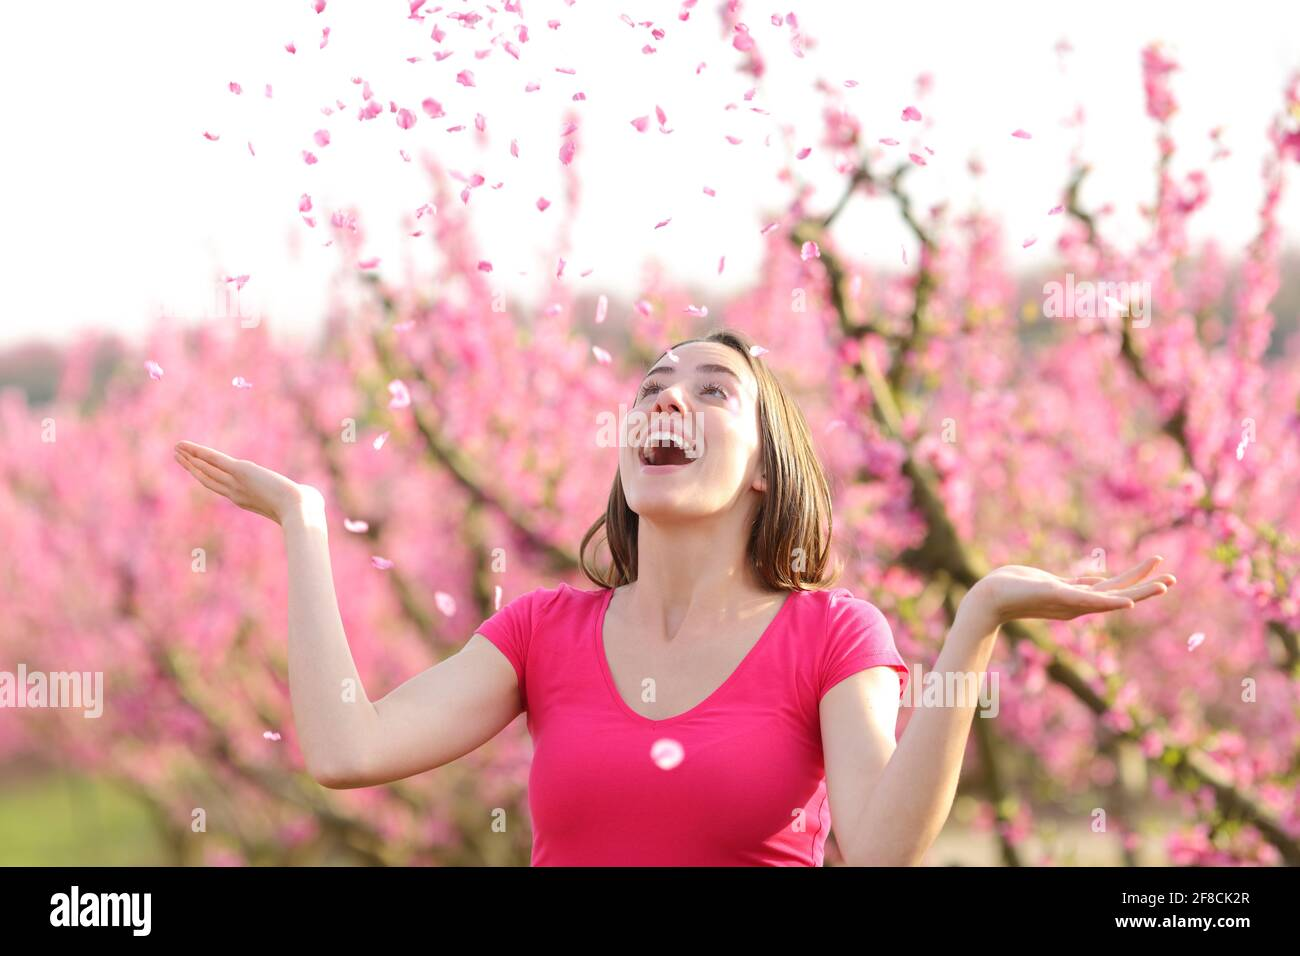 Excited woman throwing flower petals to the air in springtime in a pink field Stock Photo